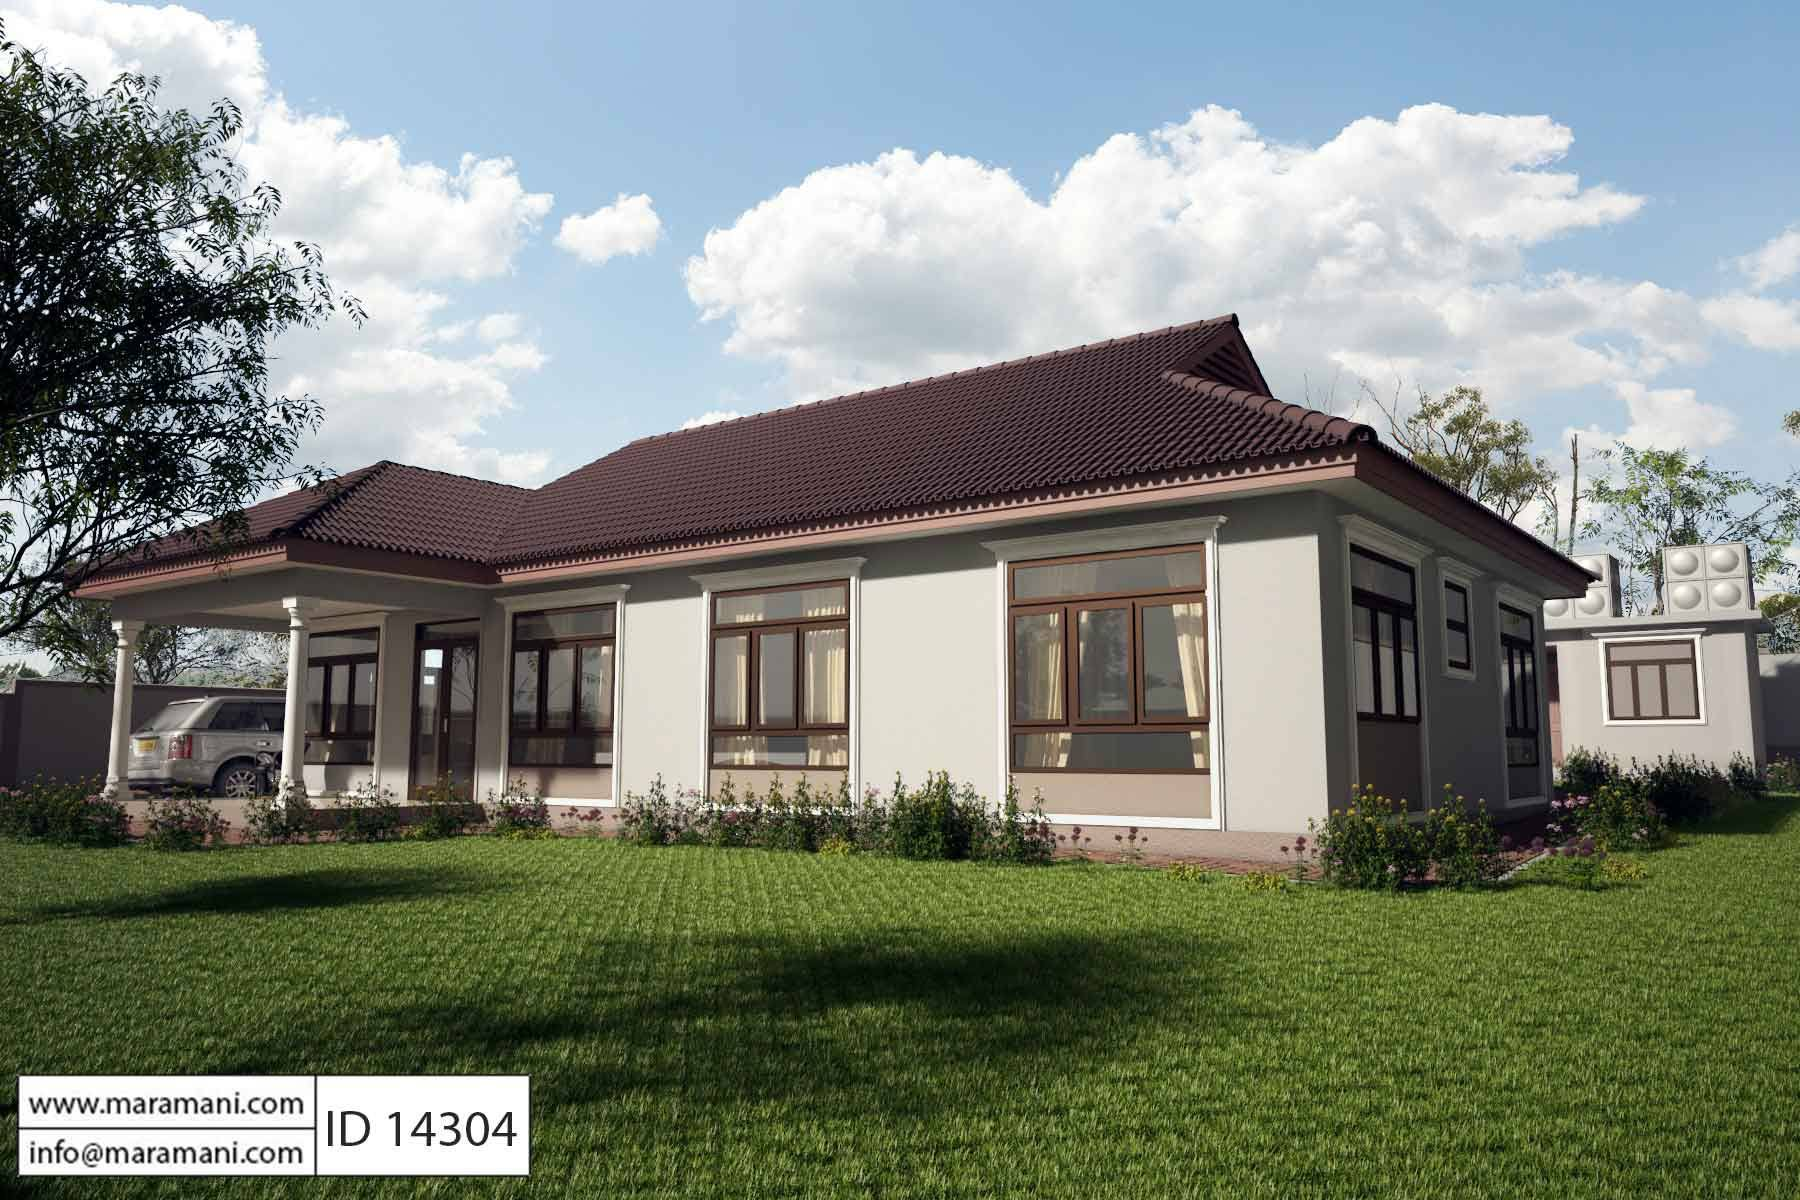 4 bedroom single story house plan id 14304 house plans for House olans